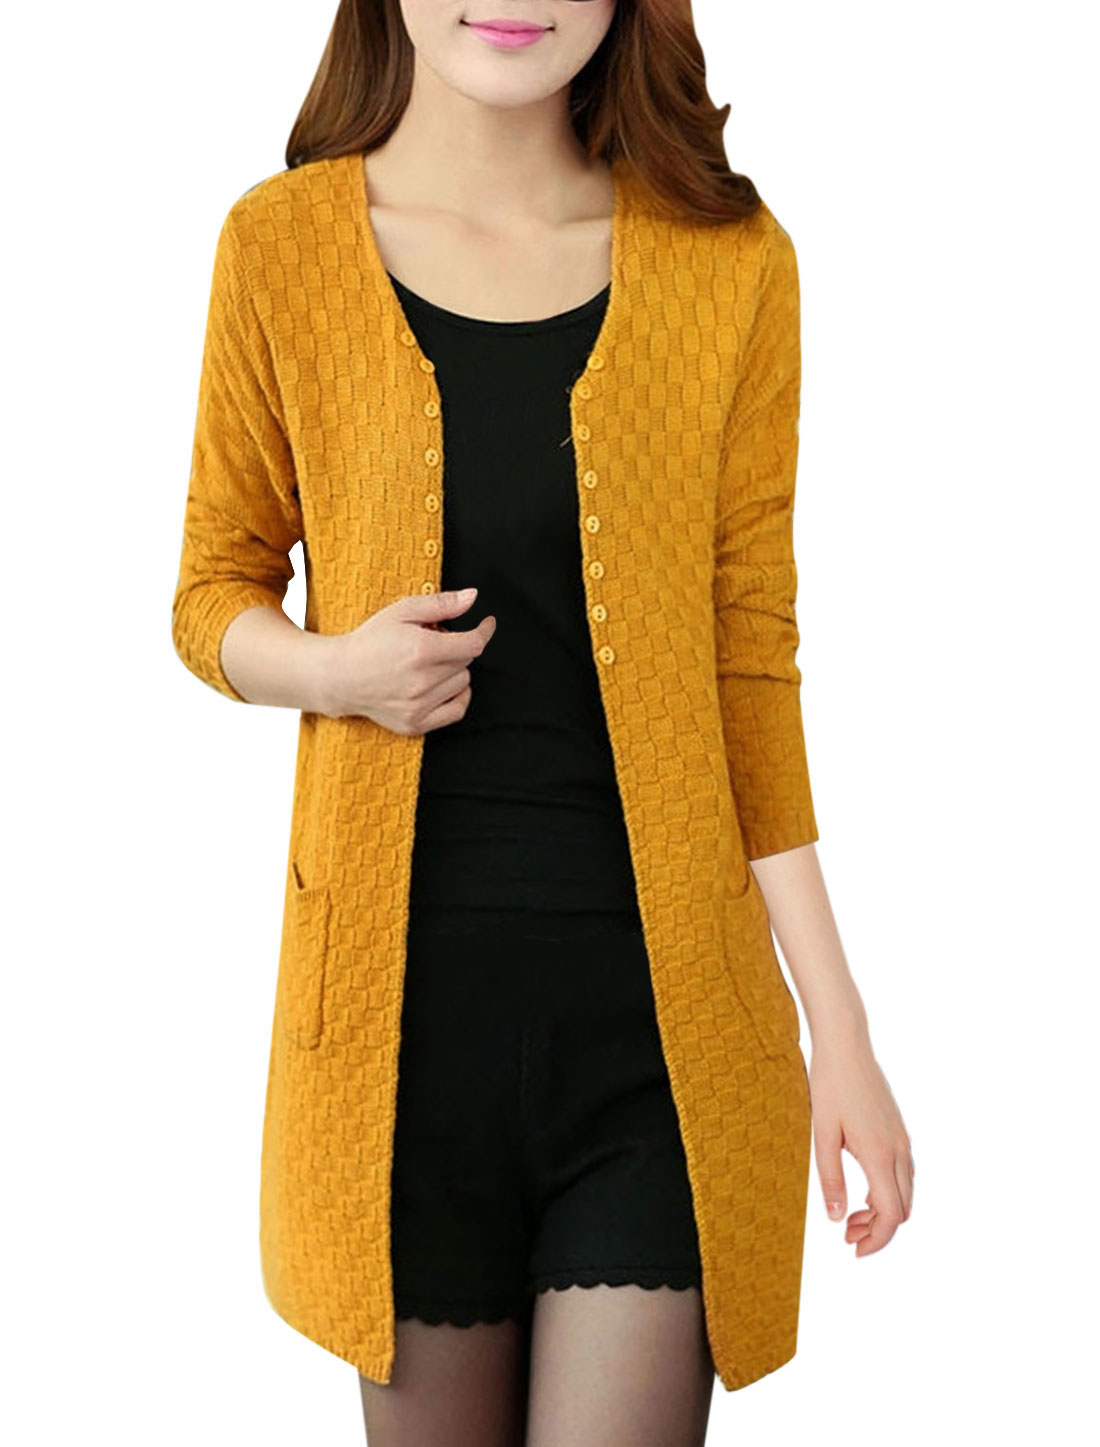 Lady Front Opening Buttons Decor Knitwear Cardigan Orange S